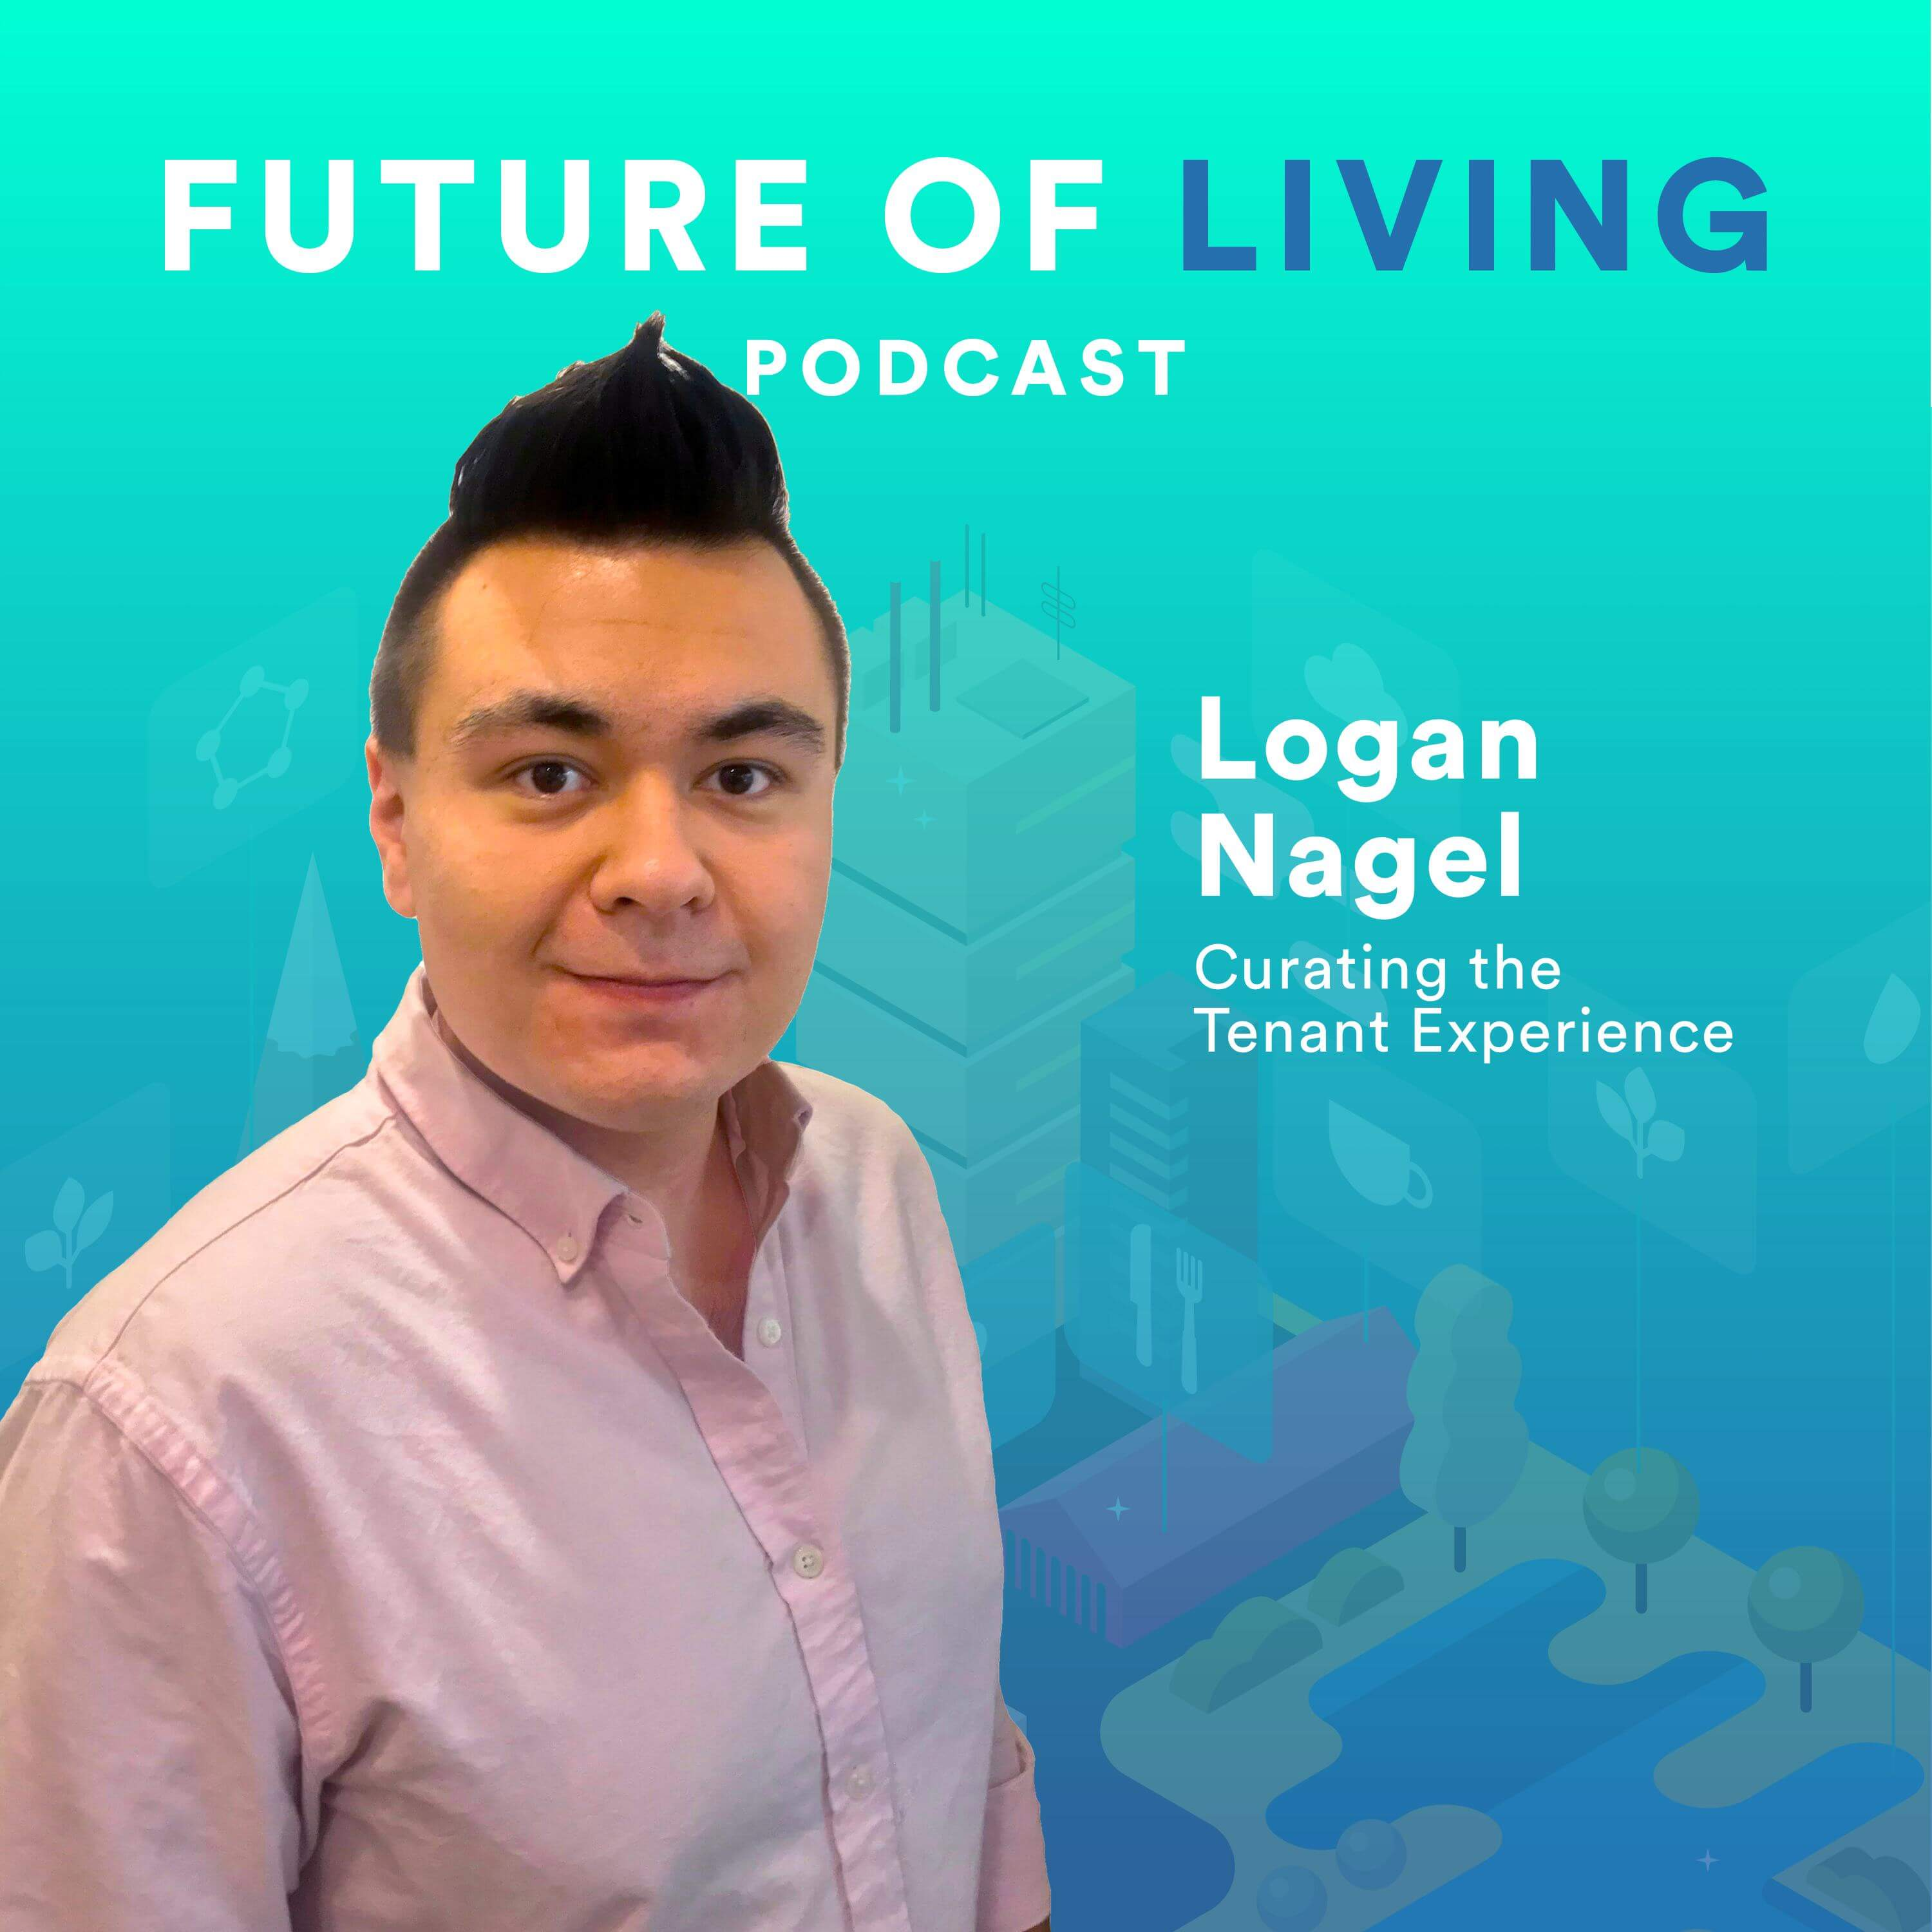 Logan Nagel – Curating the Tenant Experience